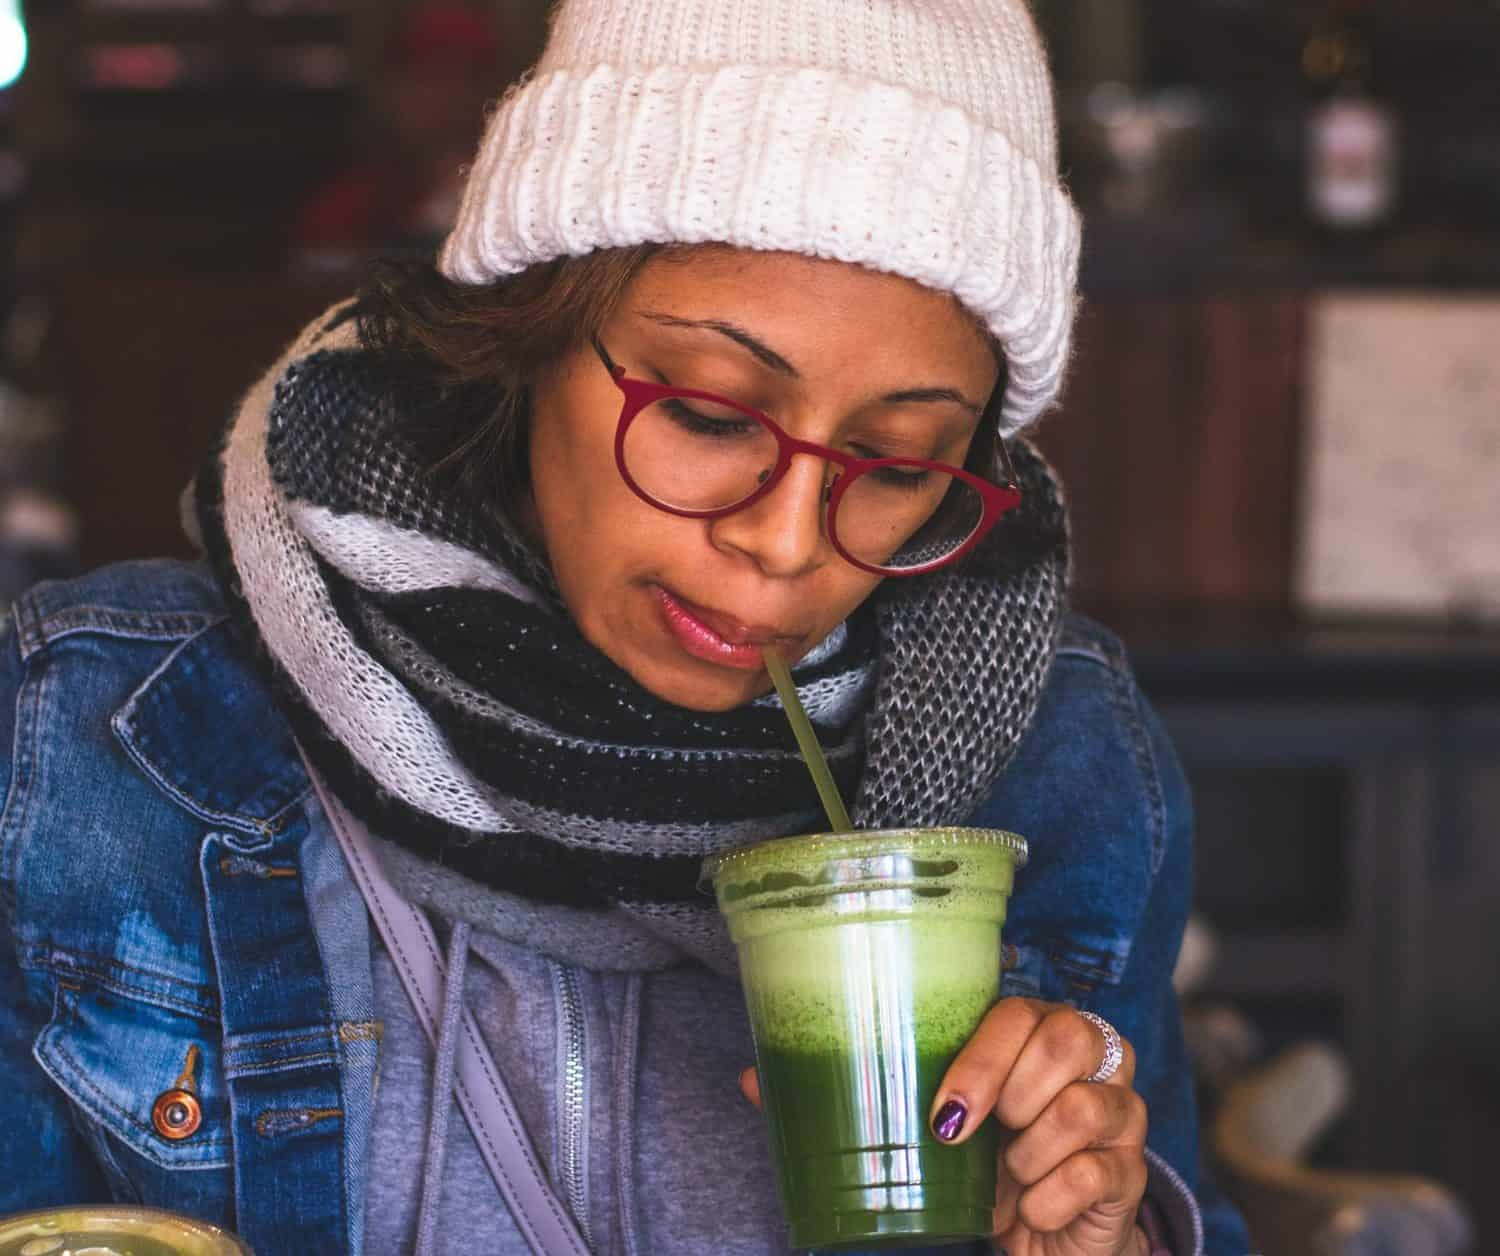 Food For Mzansi's resident nutritionist, Andrea Du Plessis, recommends that you make your own juice.